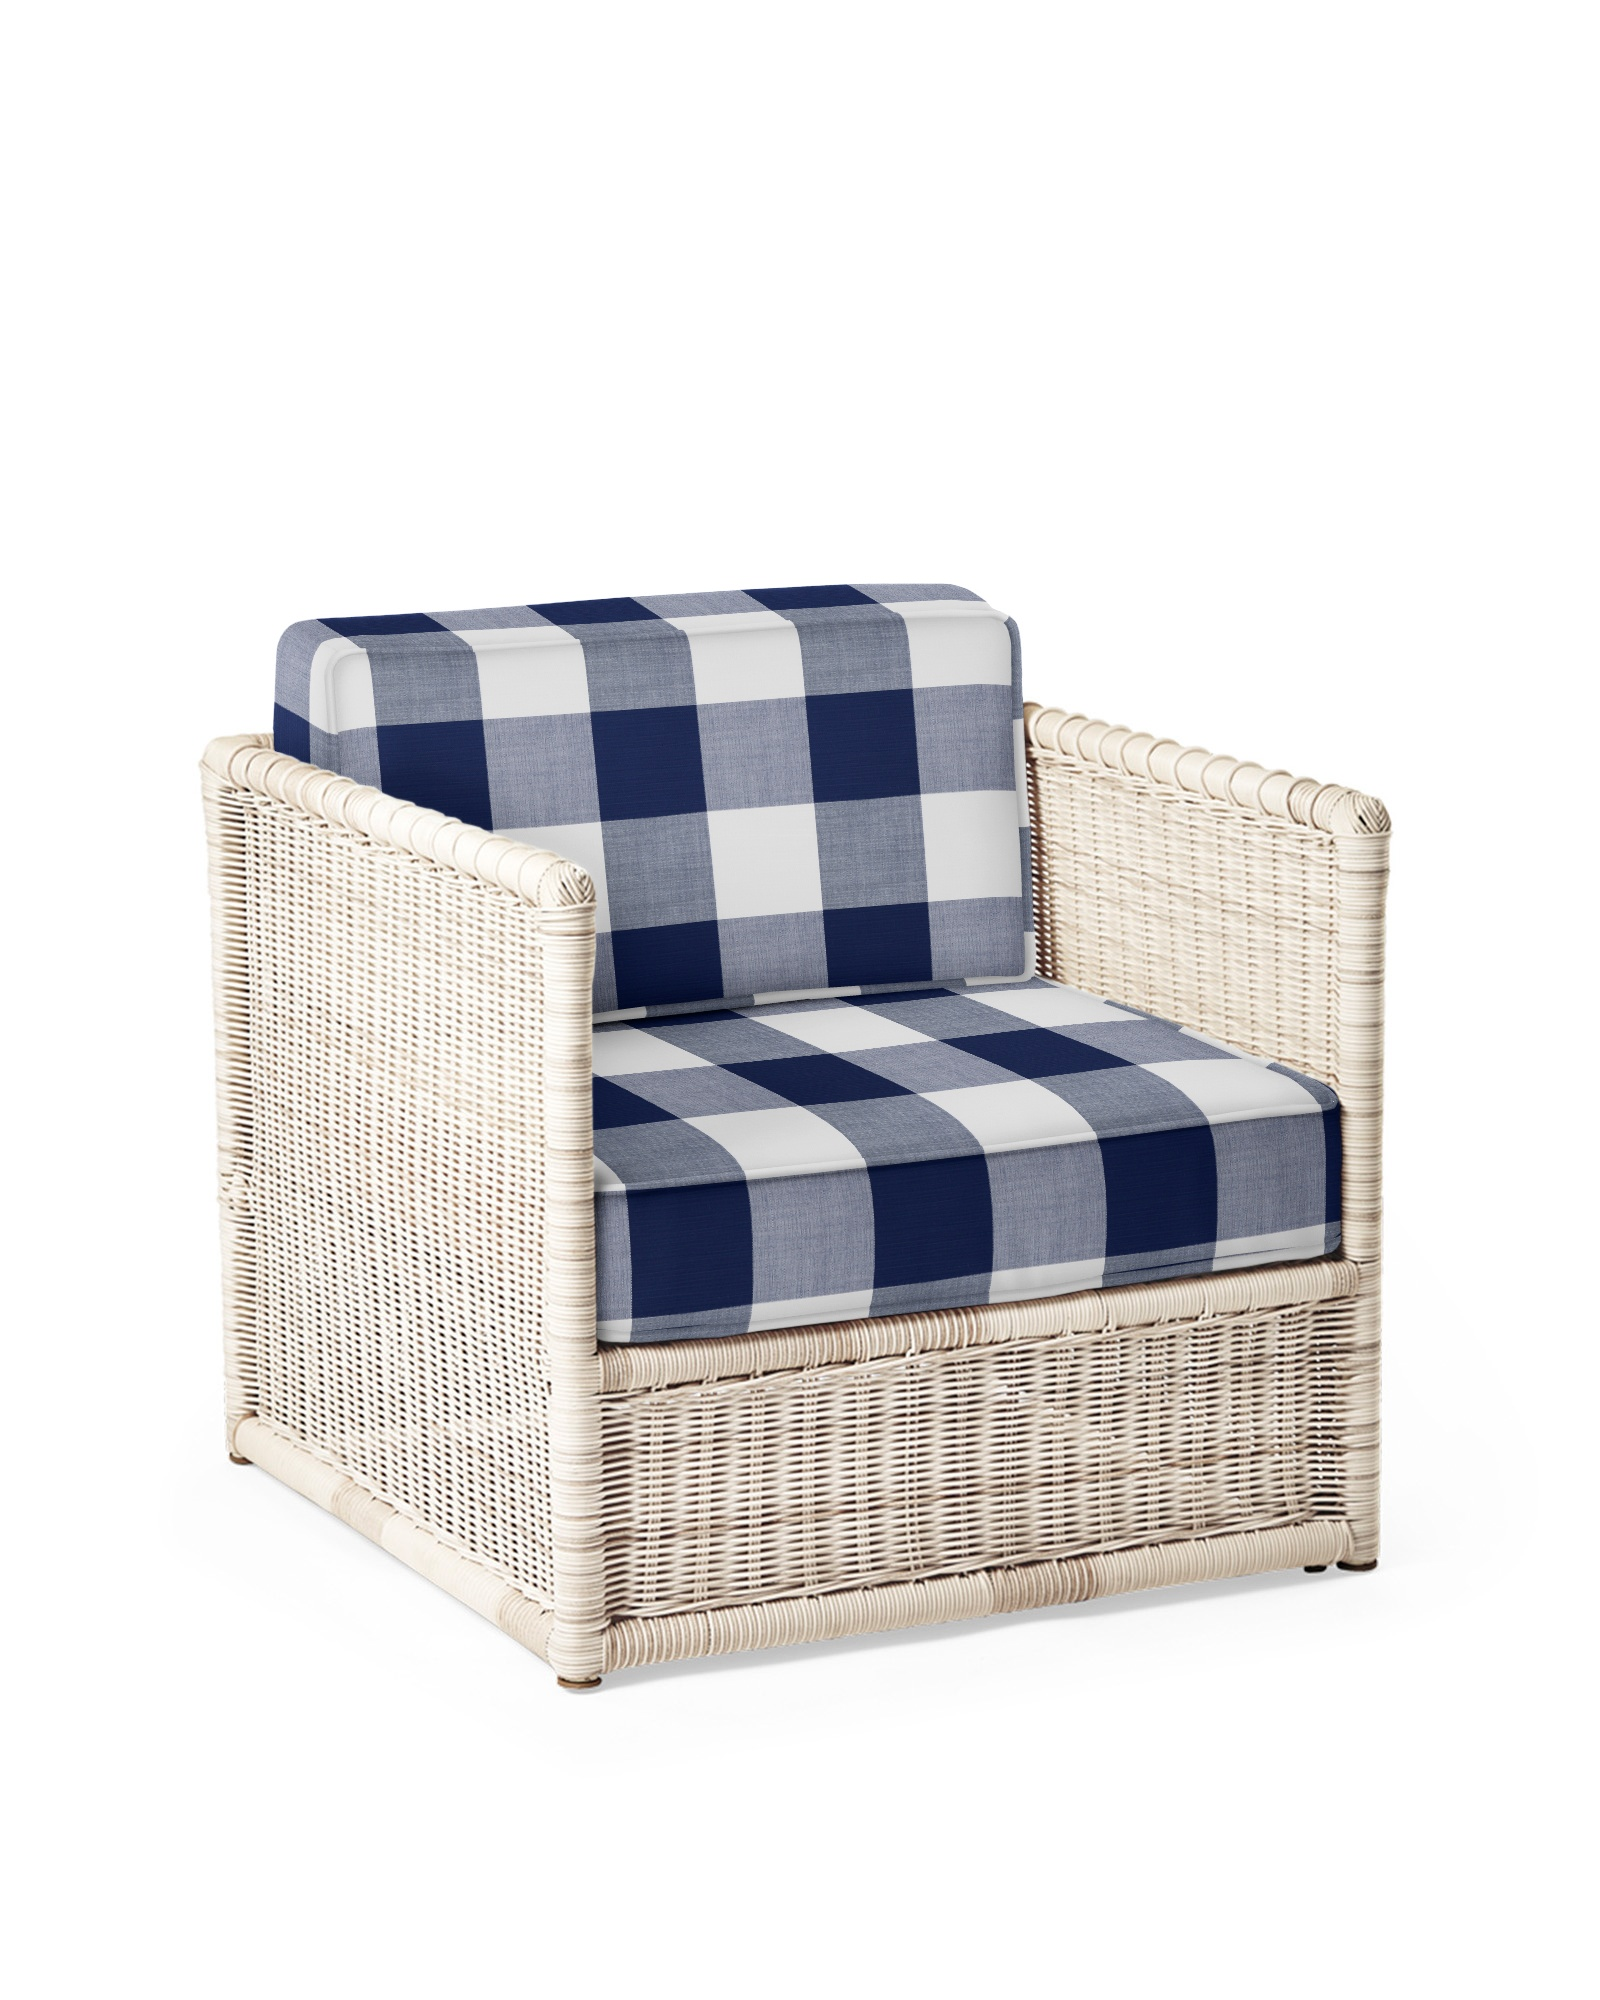 Cushion Cover for Pacifica Lounge Chair, Perennials Gingham Navy